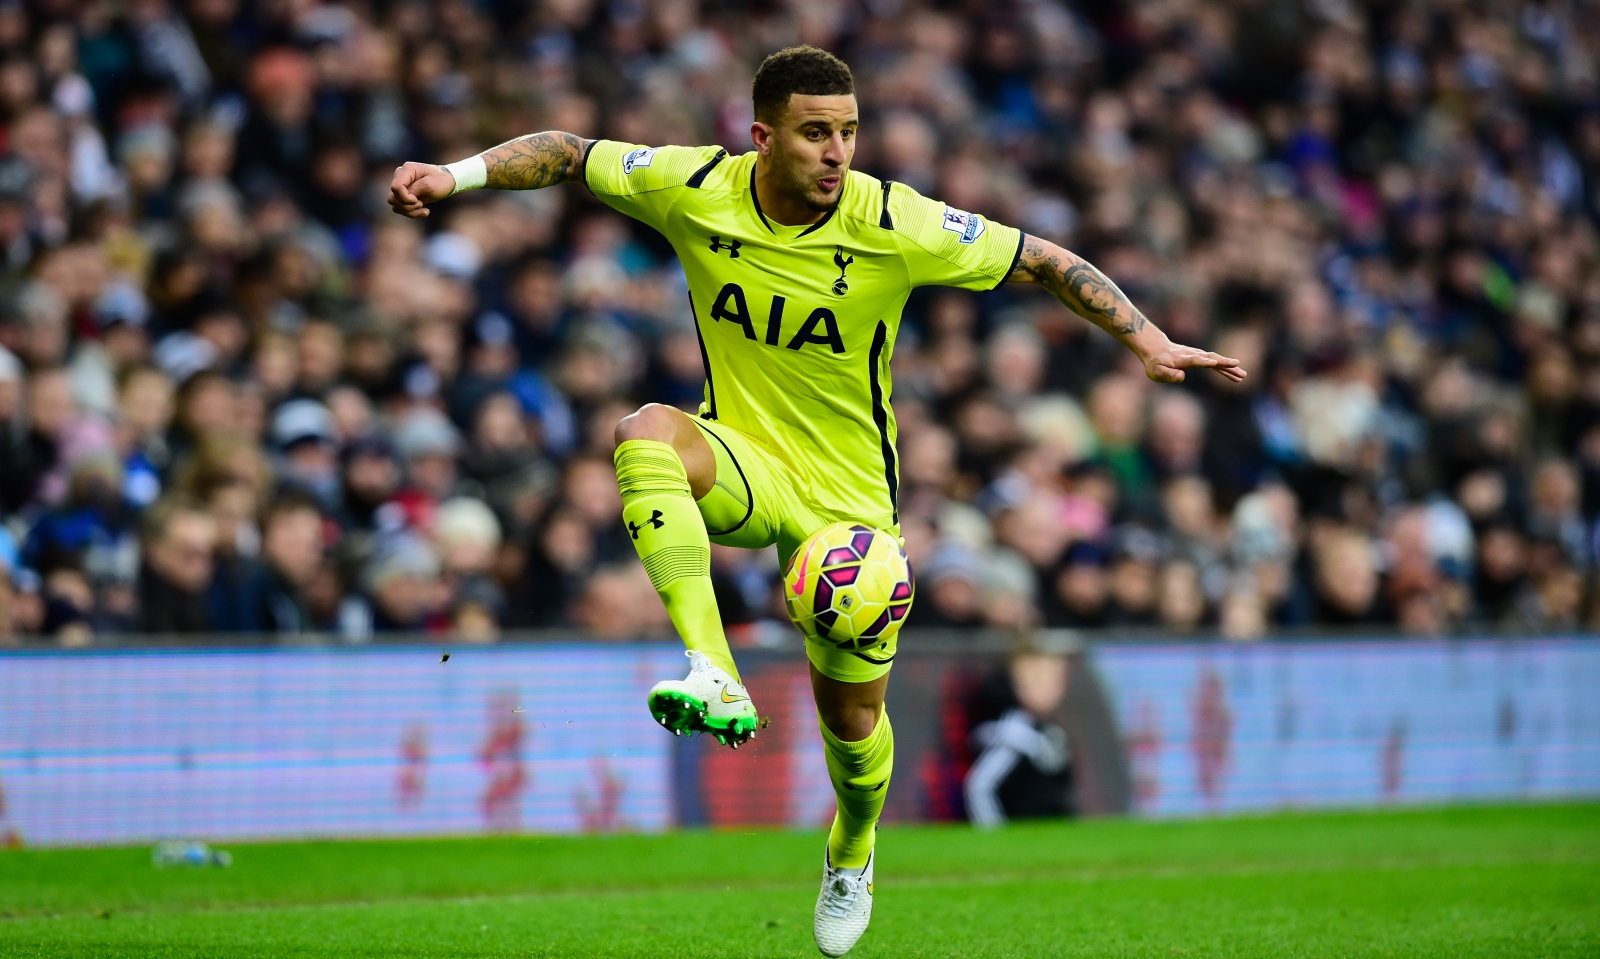 Kyle Walker hoping for injury free season with Tottenham Hotspur